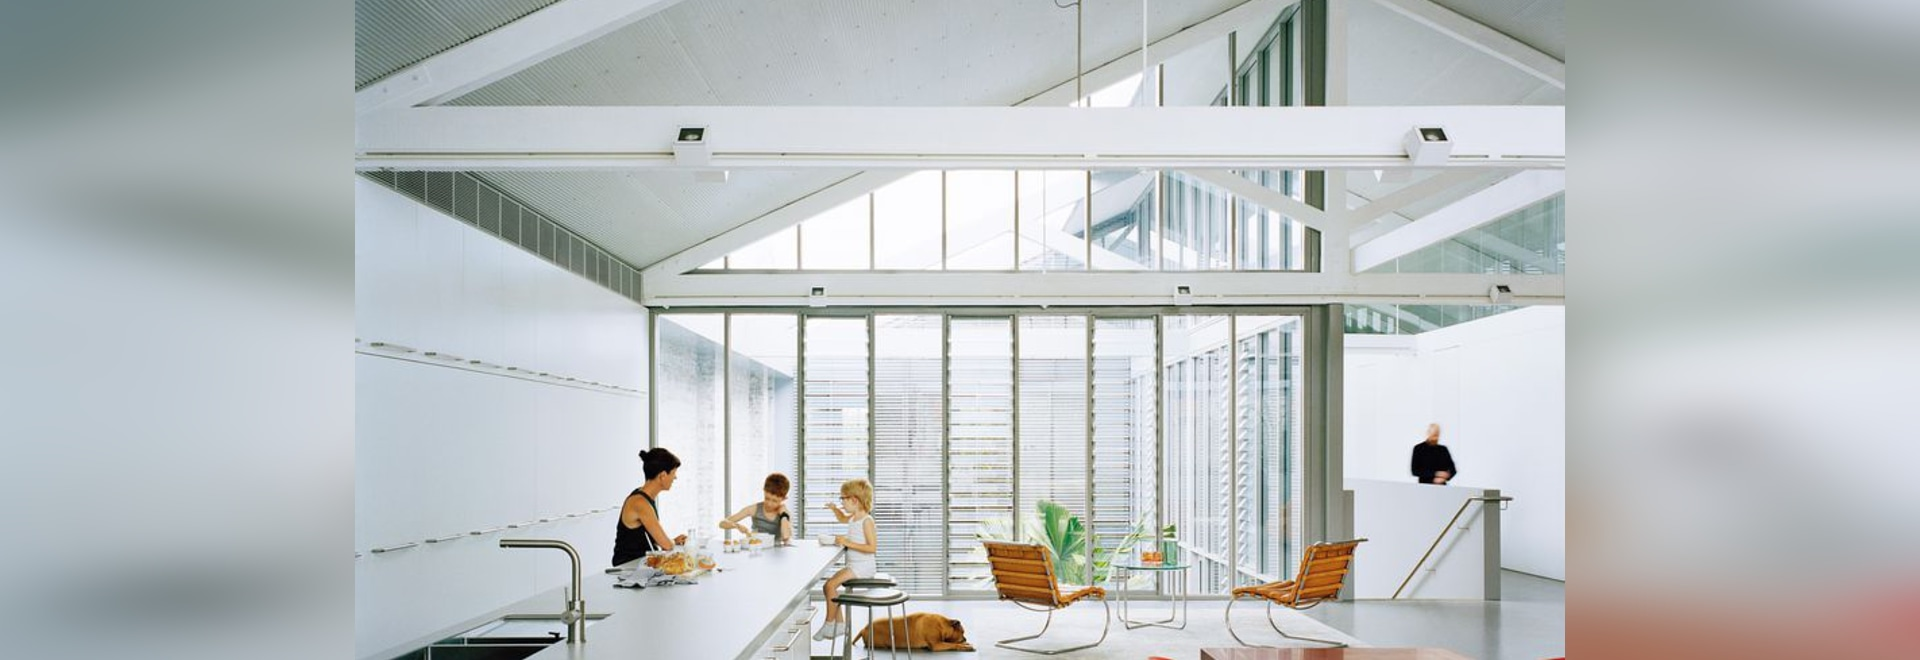 Louvres around the courtyard's glass walls allow for privacy and help to create internal vistas between rooms.